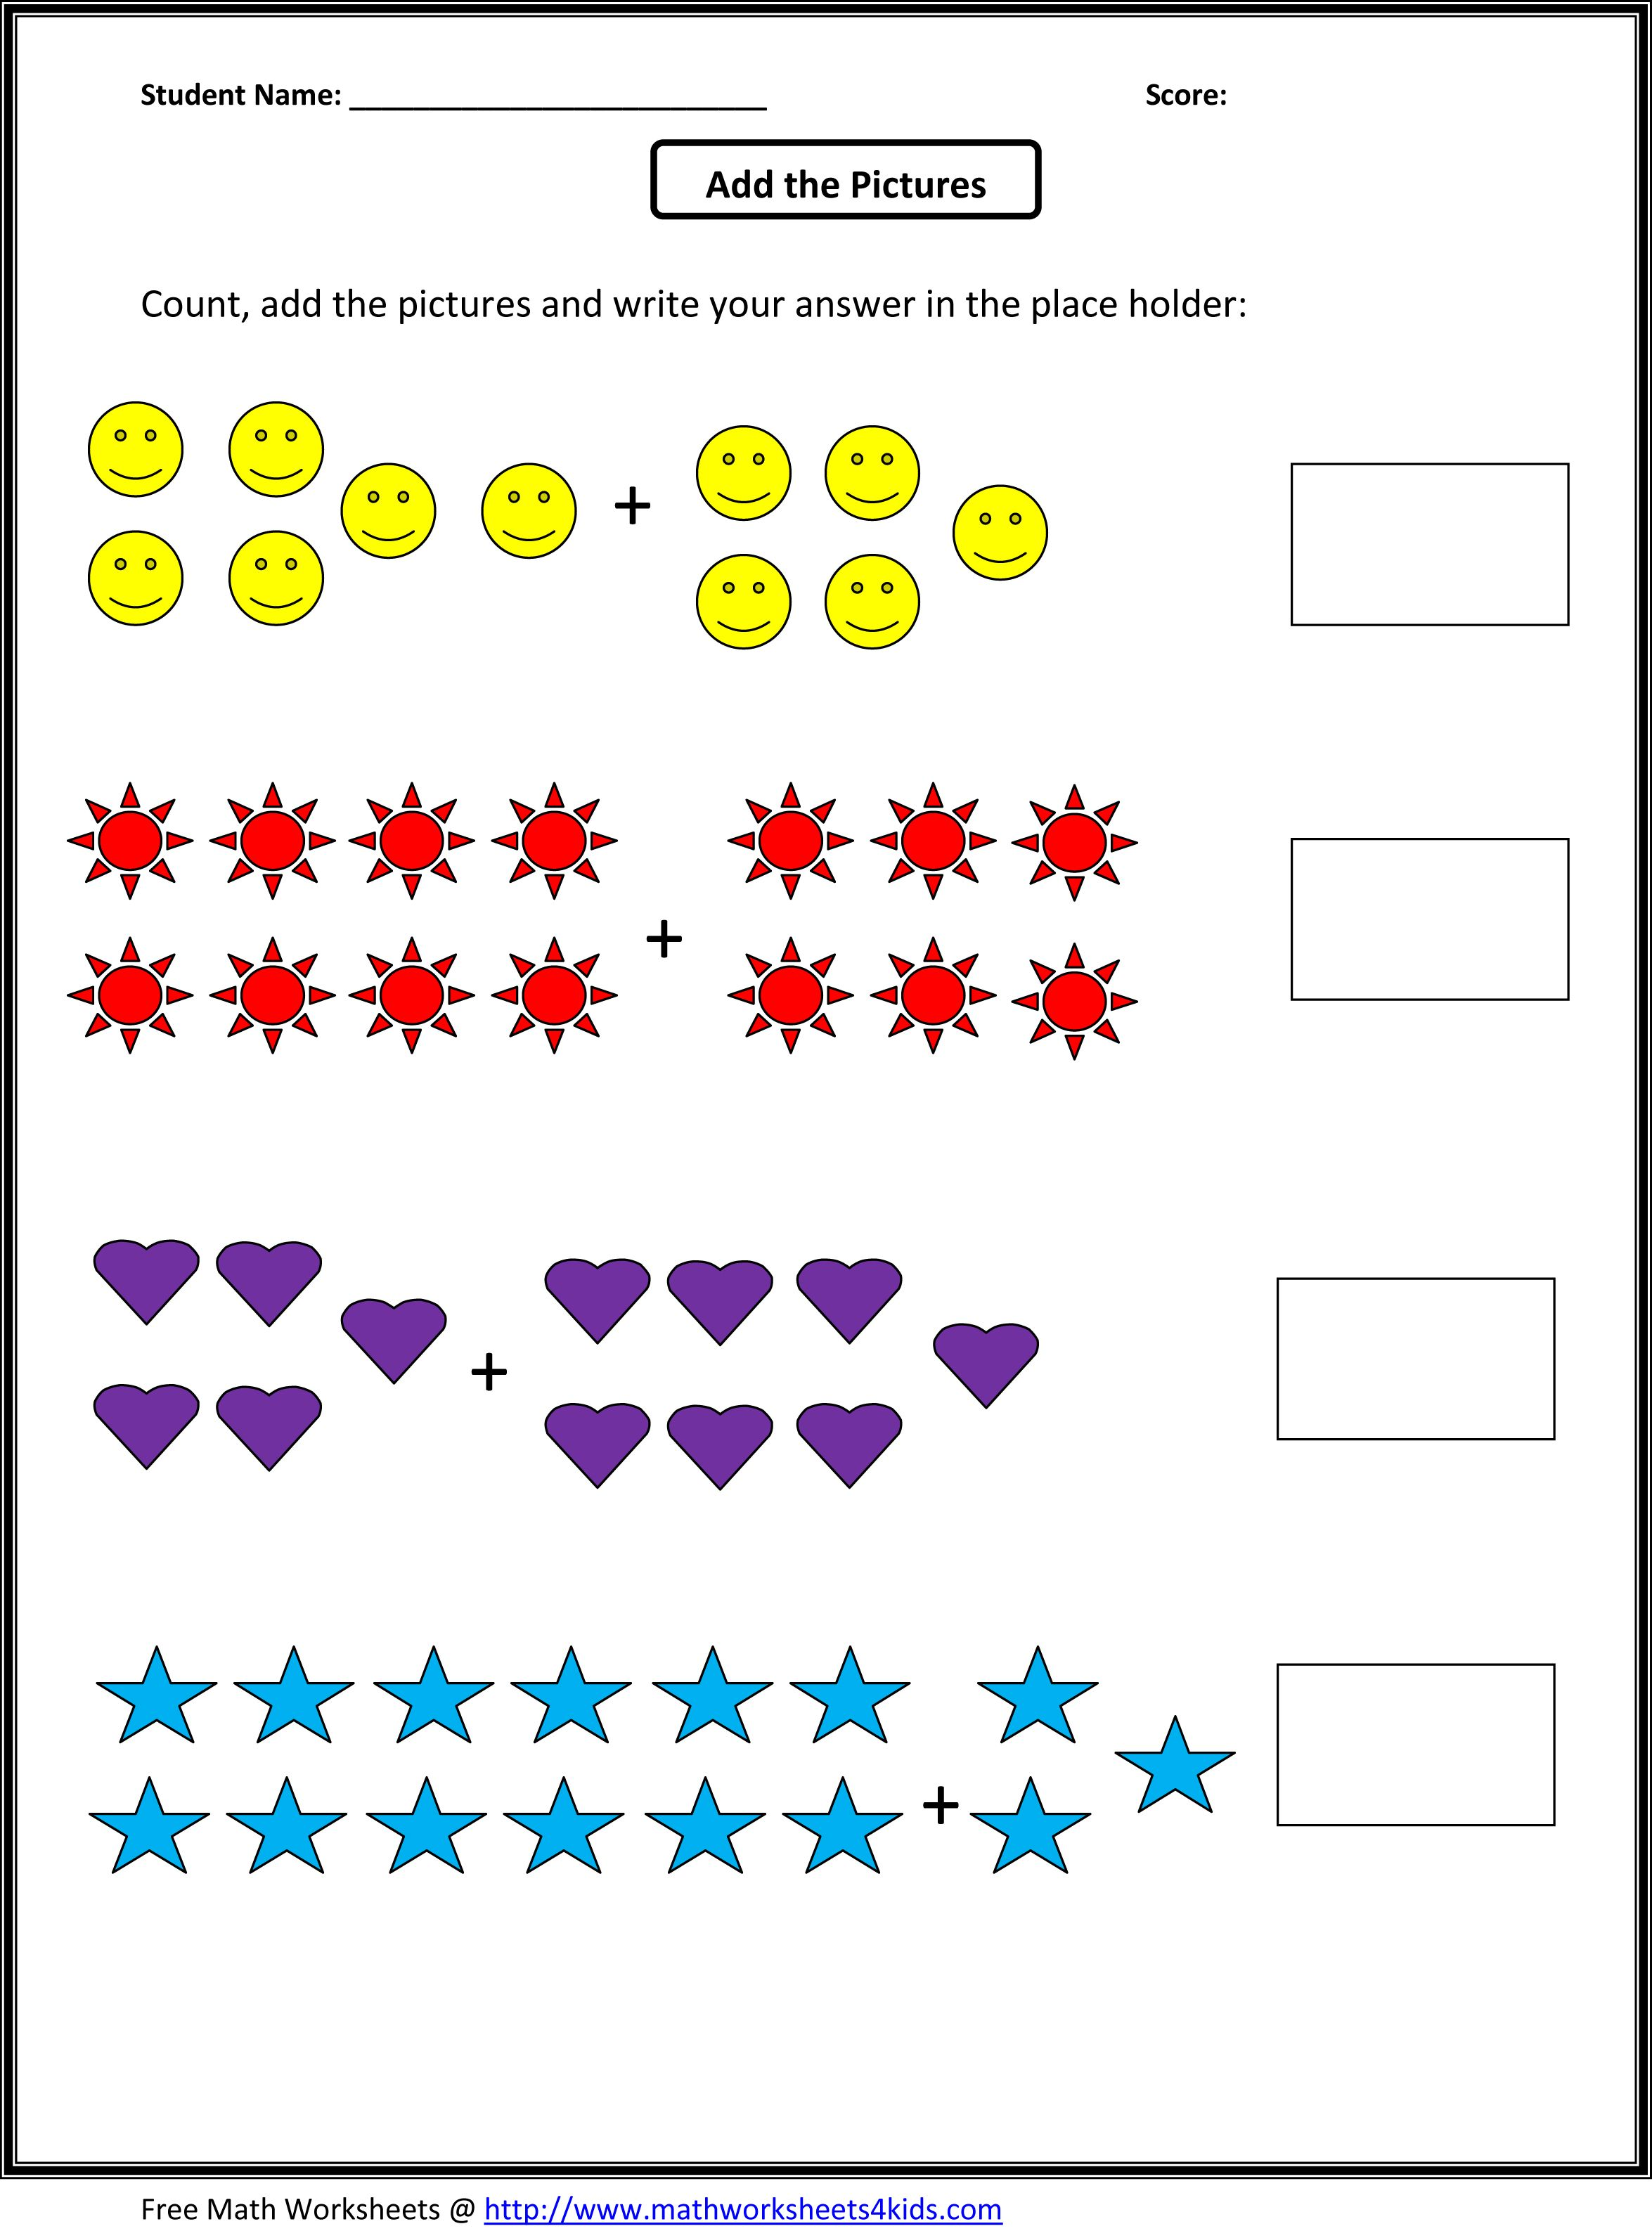 Worksheets Grade One Math Worksheets grade 1 addition math worksheets first worksheets